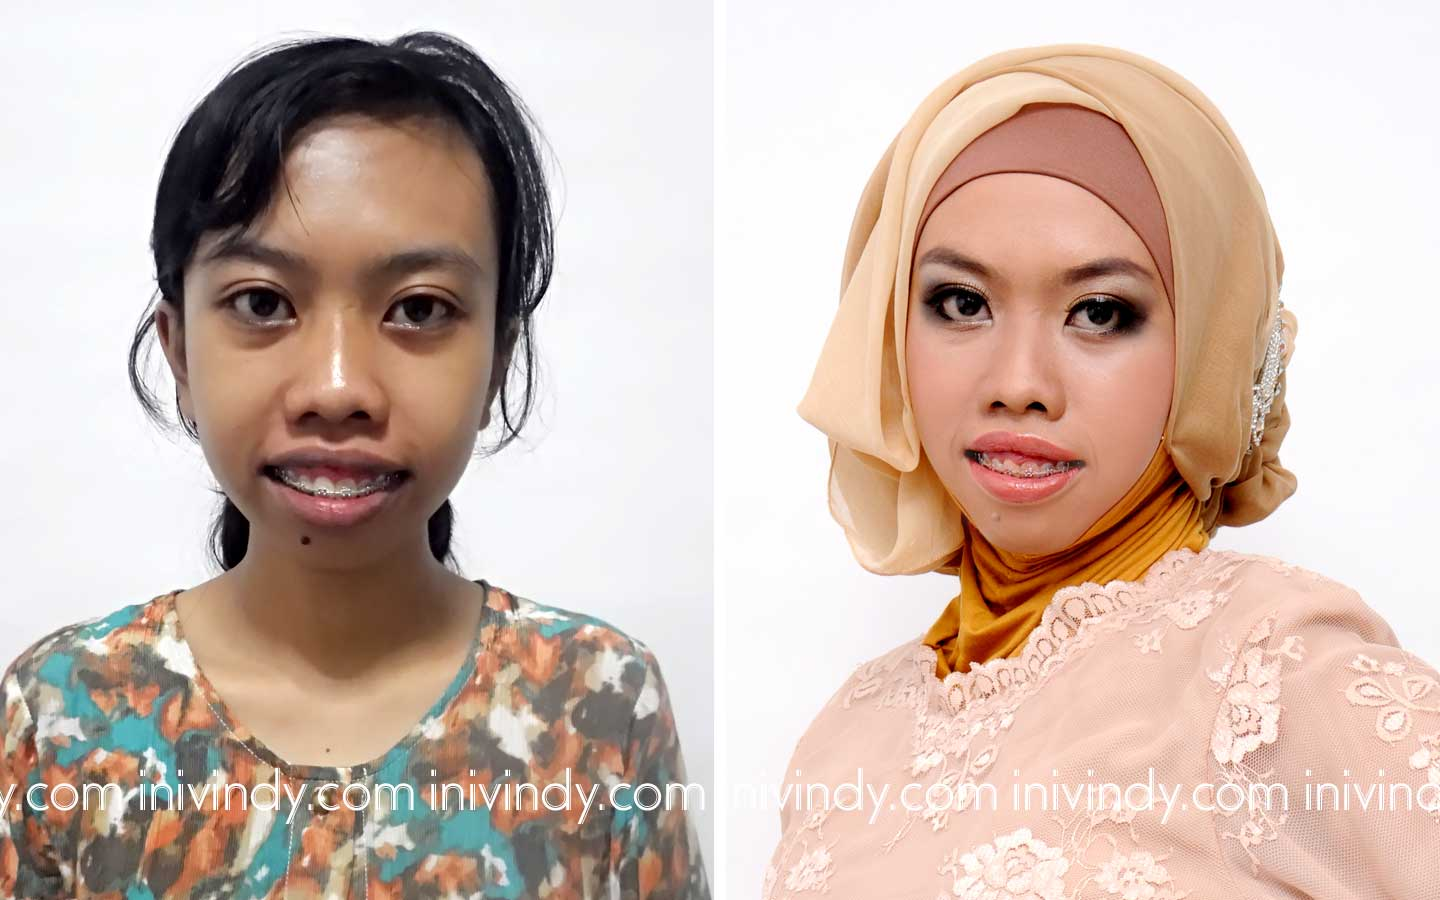 Ini Vindy Yang Ajaib Before After Makeover Wisuda Hijab Natural